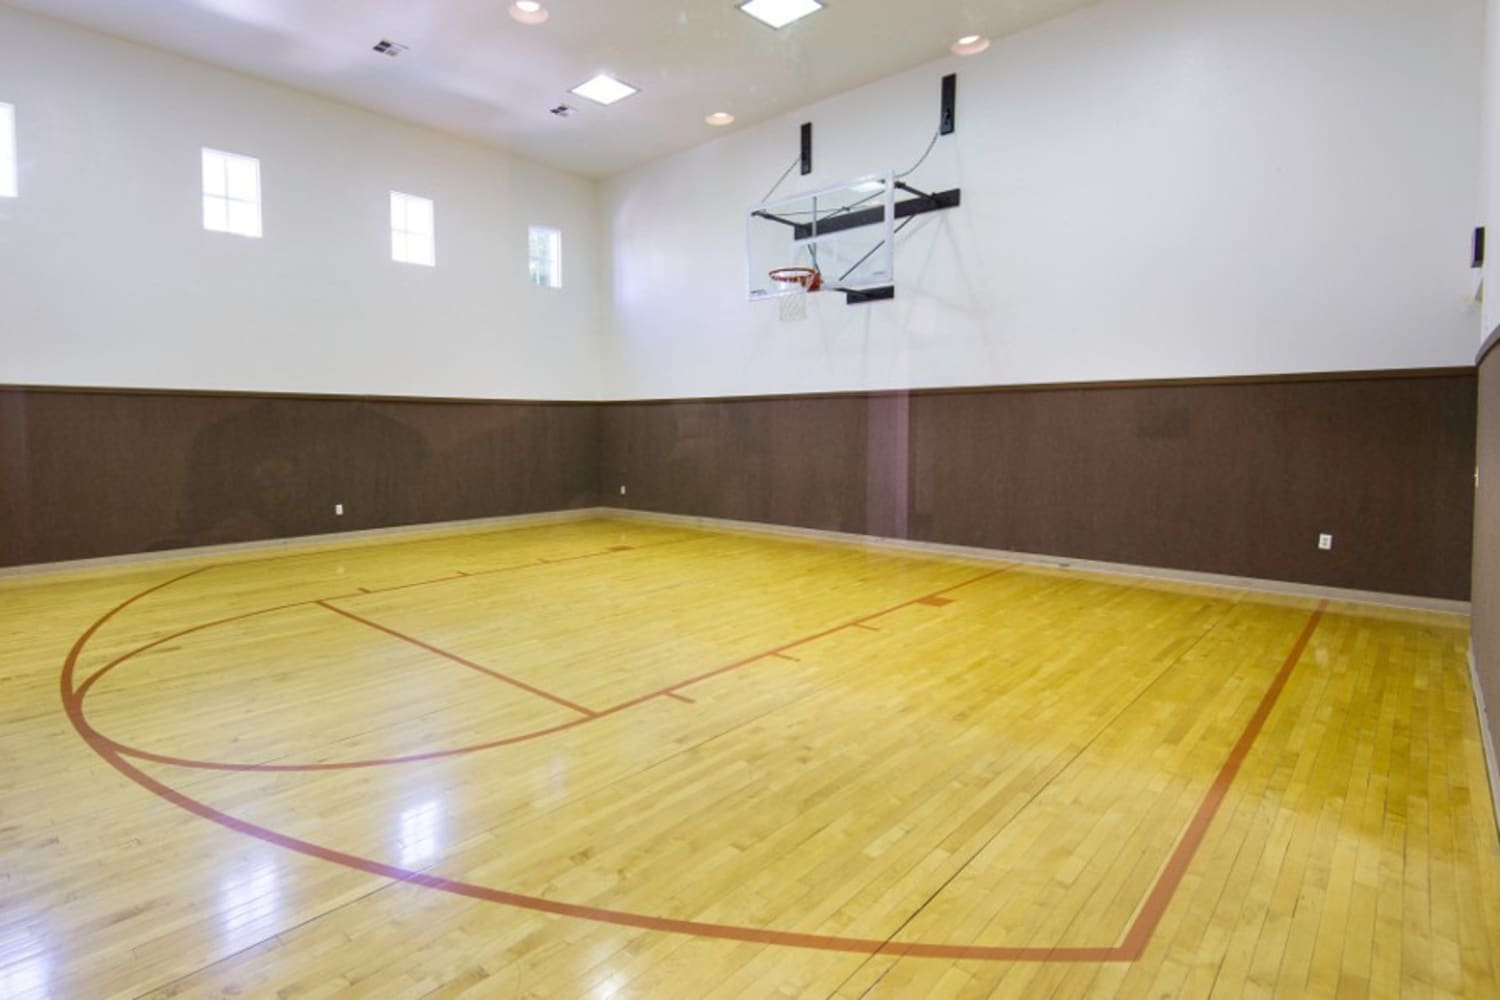 Enjoy at basketball court at Irving Schoolhouse Apartments in Salt Lake City, Utah